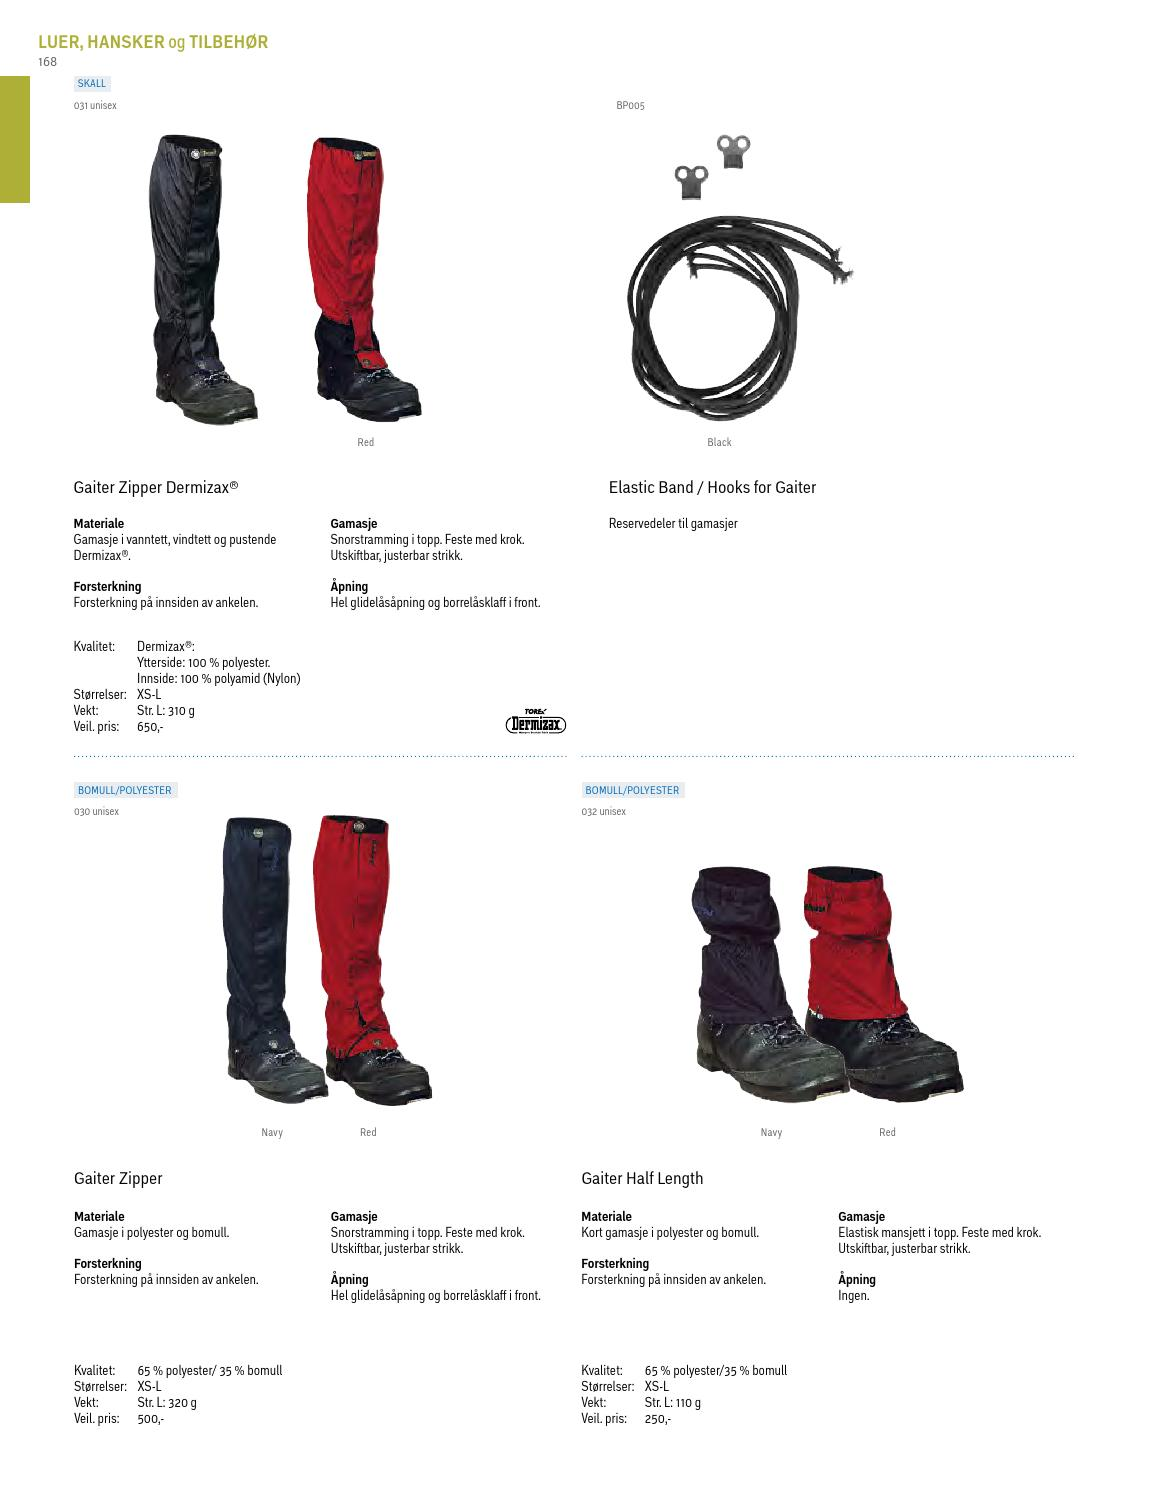 d09c0715 Bergans Produktkatalog Høst/Vinter 2014-2015 by Bergans of Norway - issuu